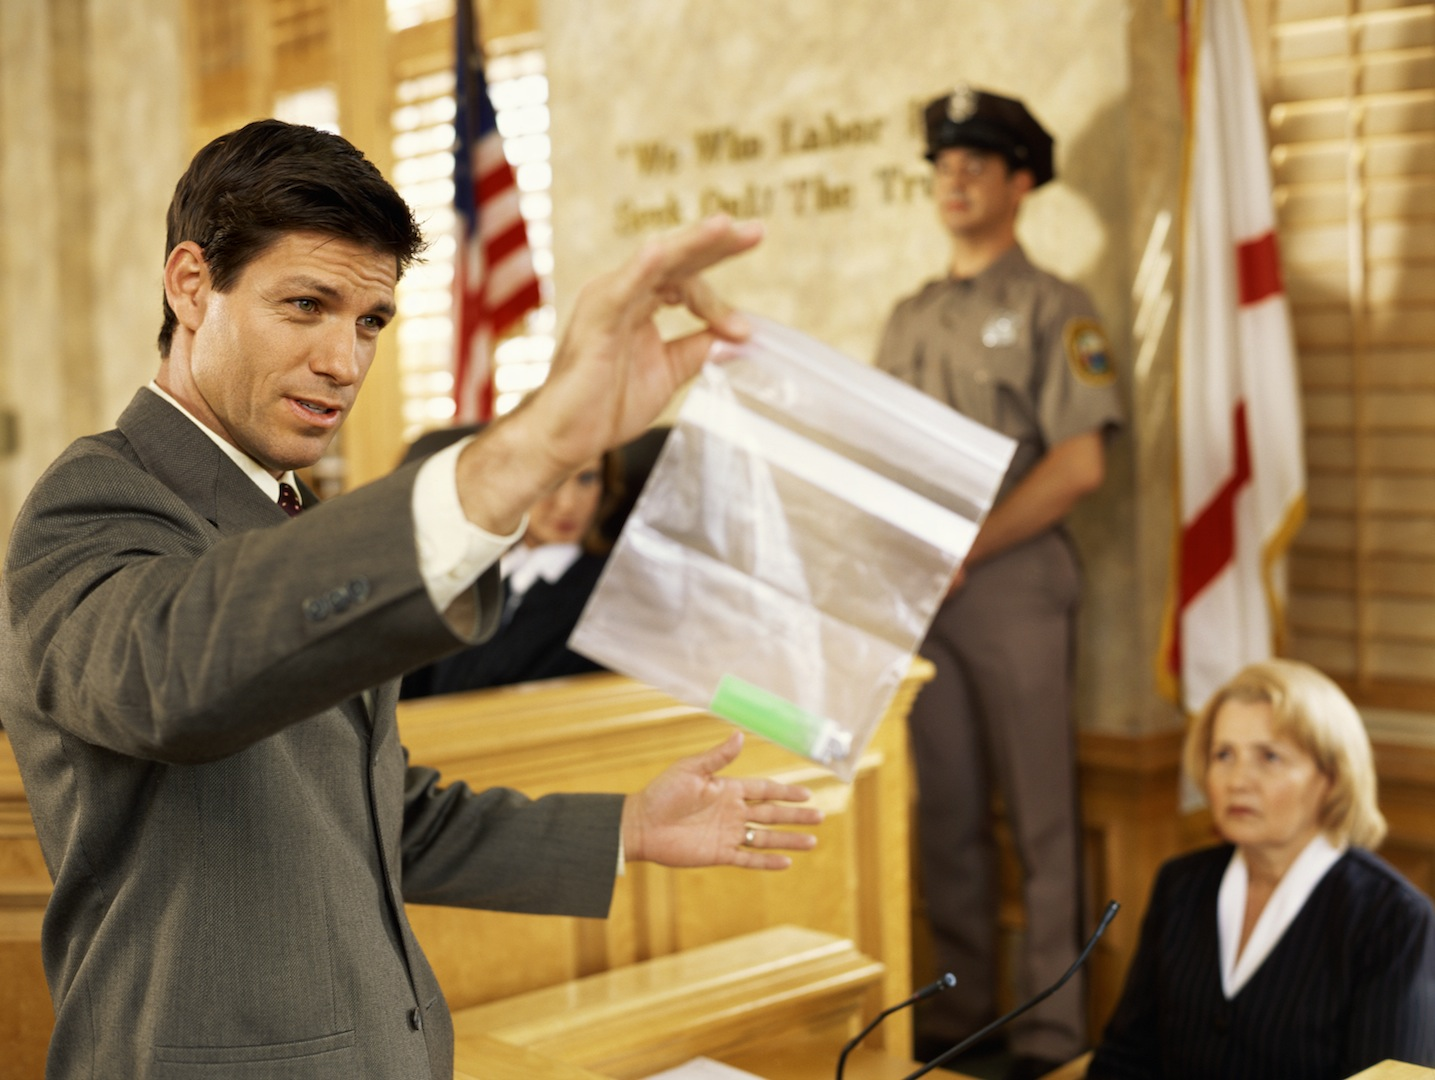 Male lawyer displaying to. Evidence clipart jury